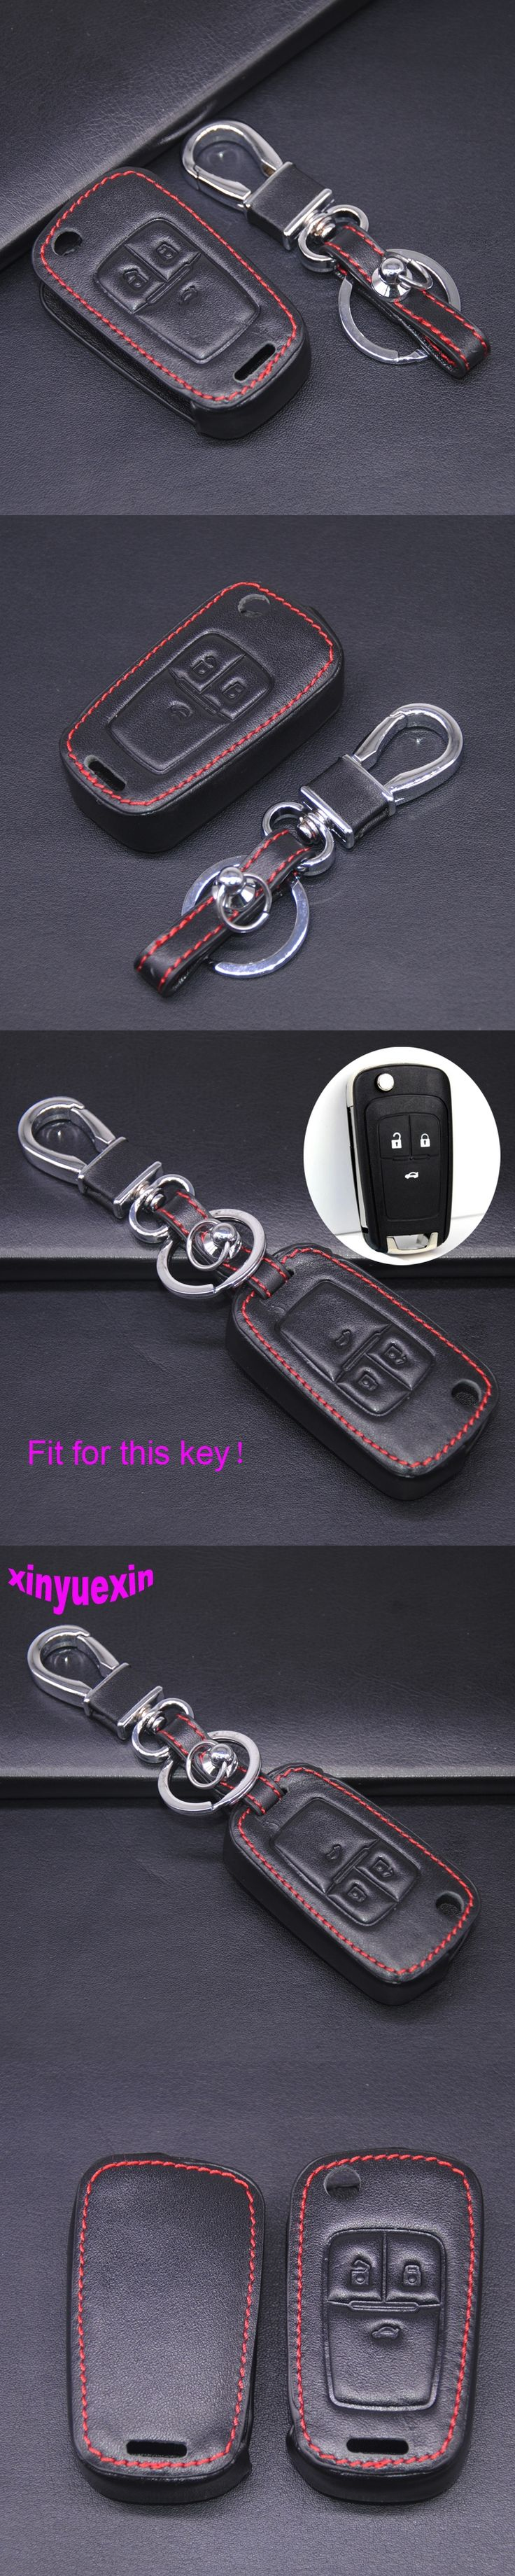 Xinyuexin Leather Car Key Cover Fob Case For Chevrolet Cruze TRAX Aveo Lova Sail EPICA Captiva Malibu Volt With Keychain 3Button